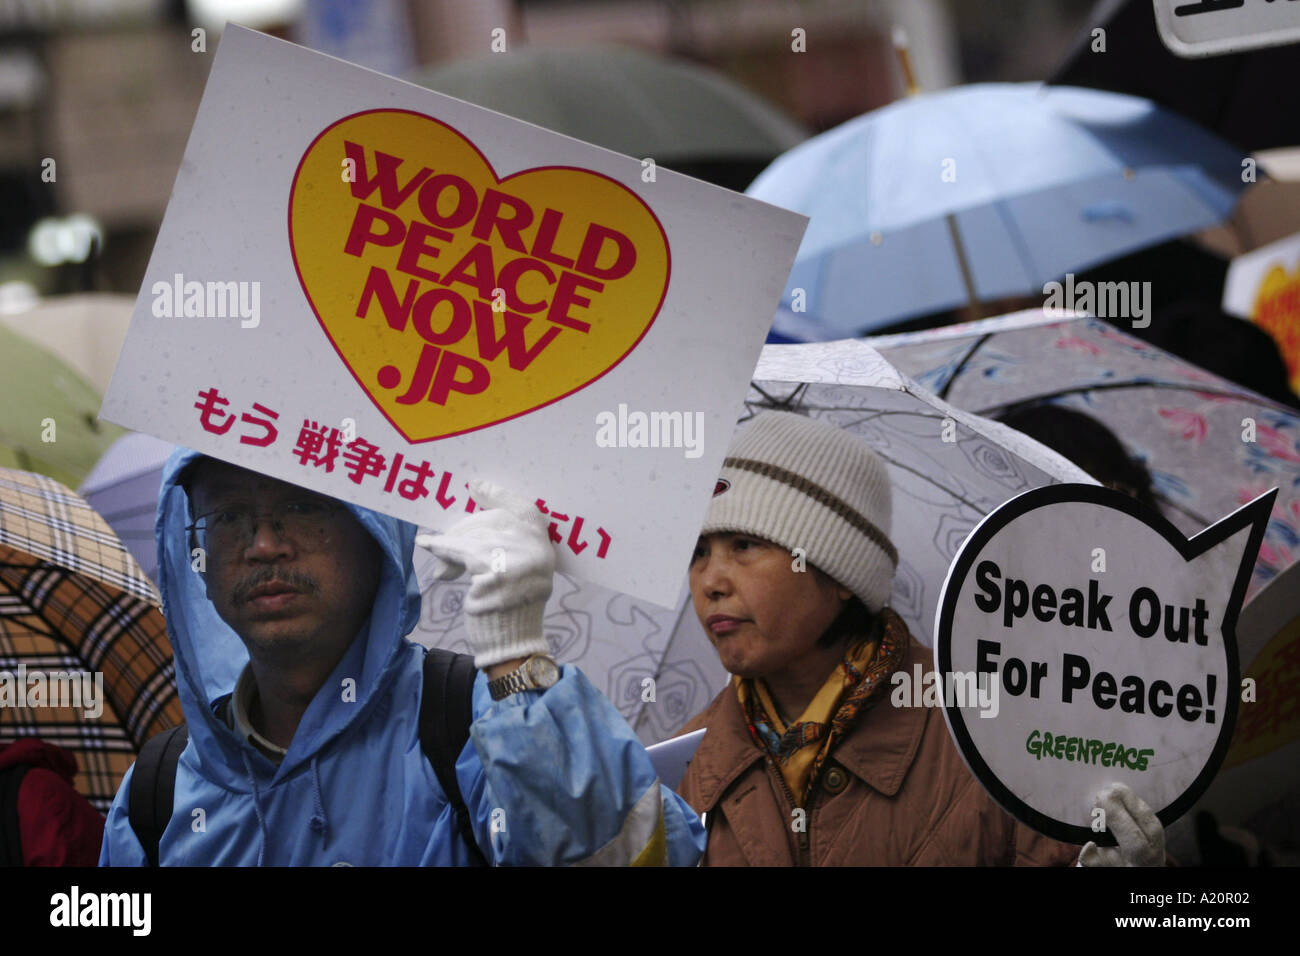 Friedensdemonstration, Anti-Kriegs-Demo, Japan Stockbild